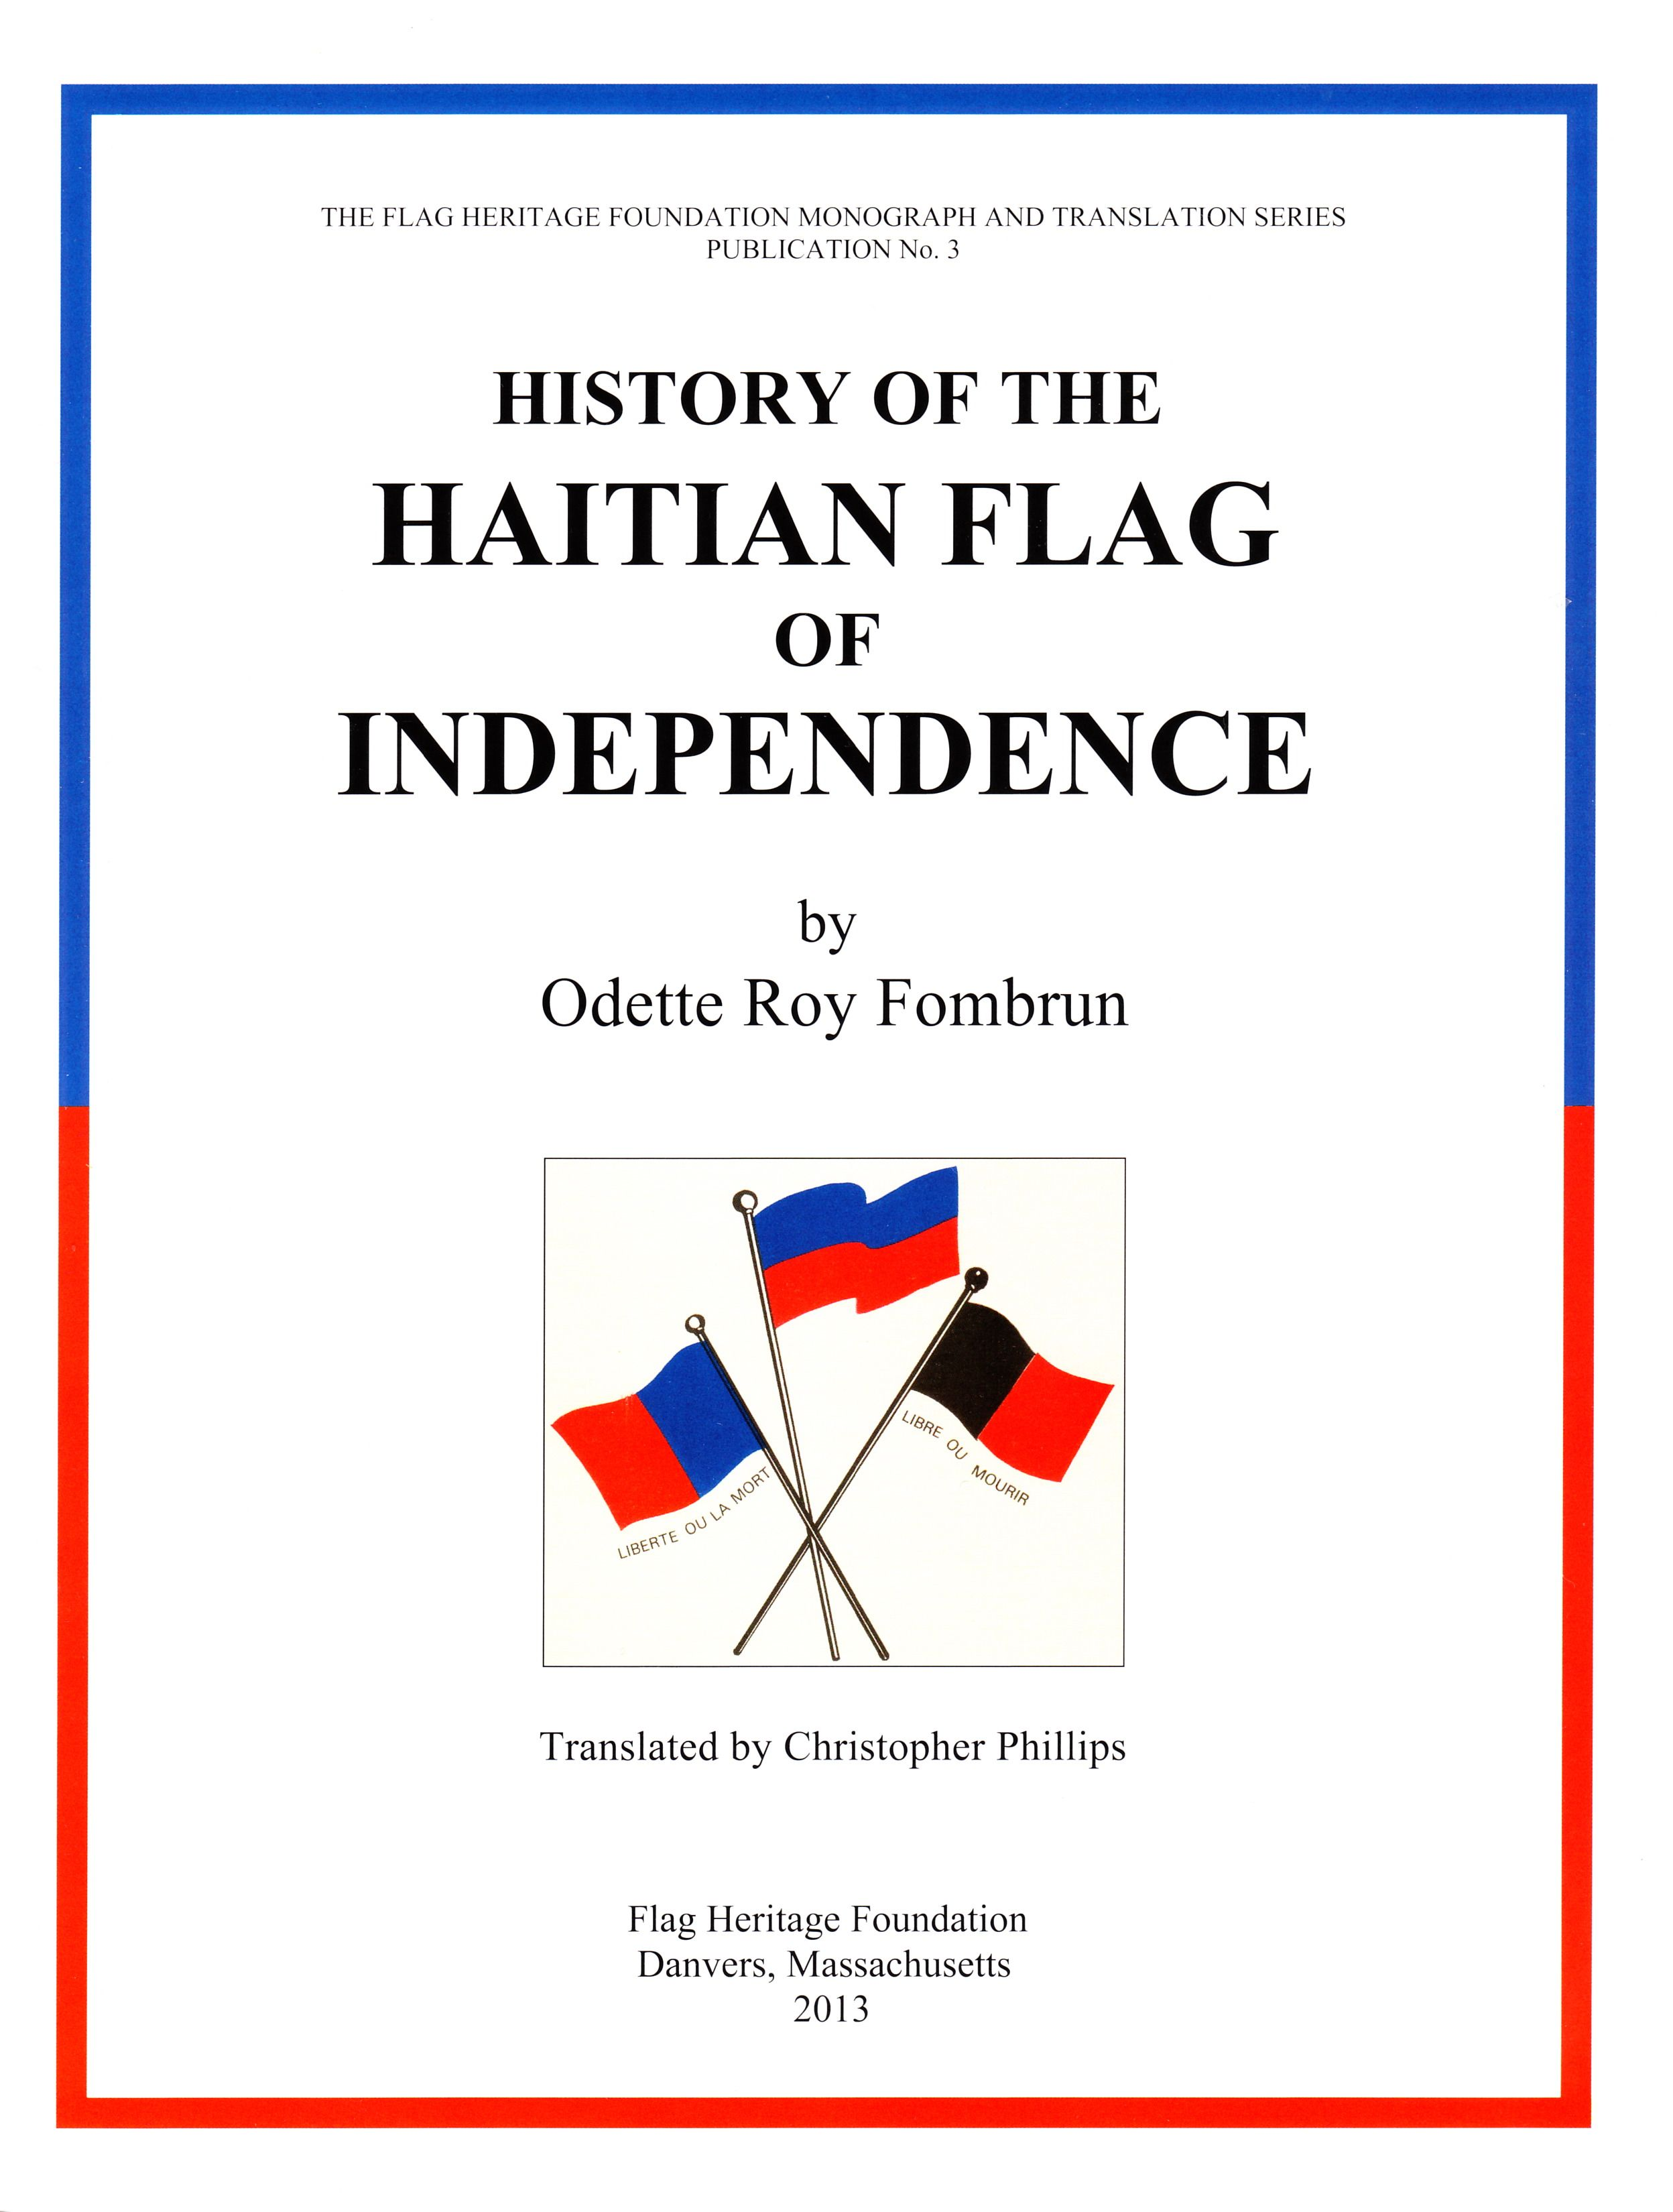 History of the haitian flag cover ayiti cherie pinterest history of the haitian flag cover fandeluxe Image collections